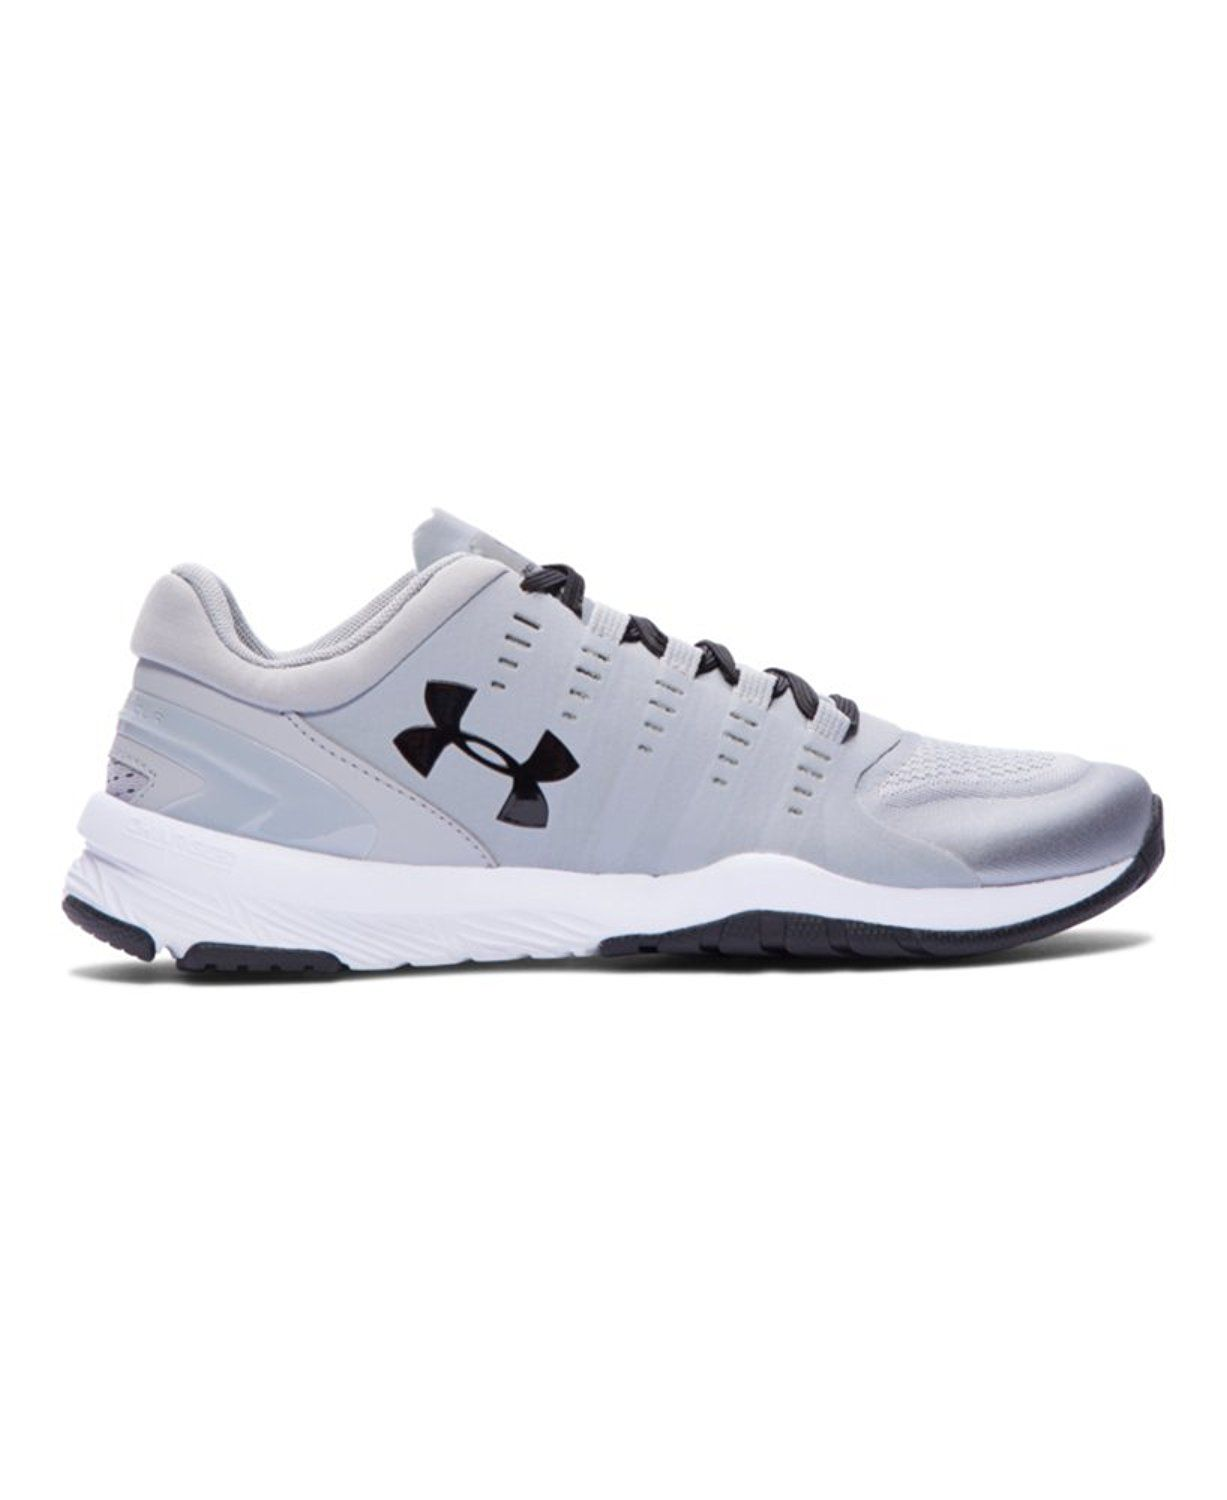 7ef365ff00ad Under Armour Women s UA Charged Stunner Training Shoes 7.5 OVERCAST GRAY      Click image to review more details.